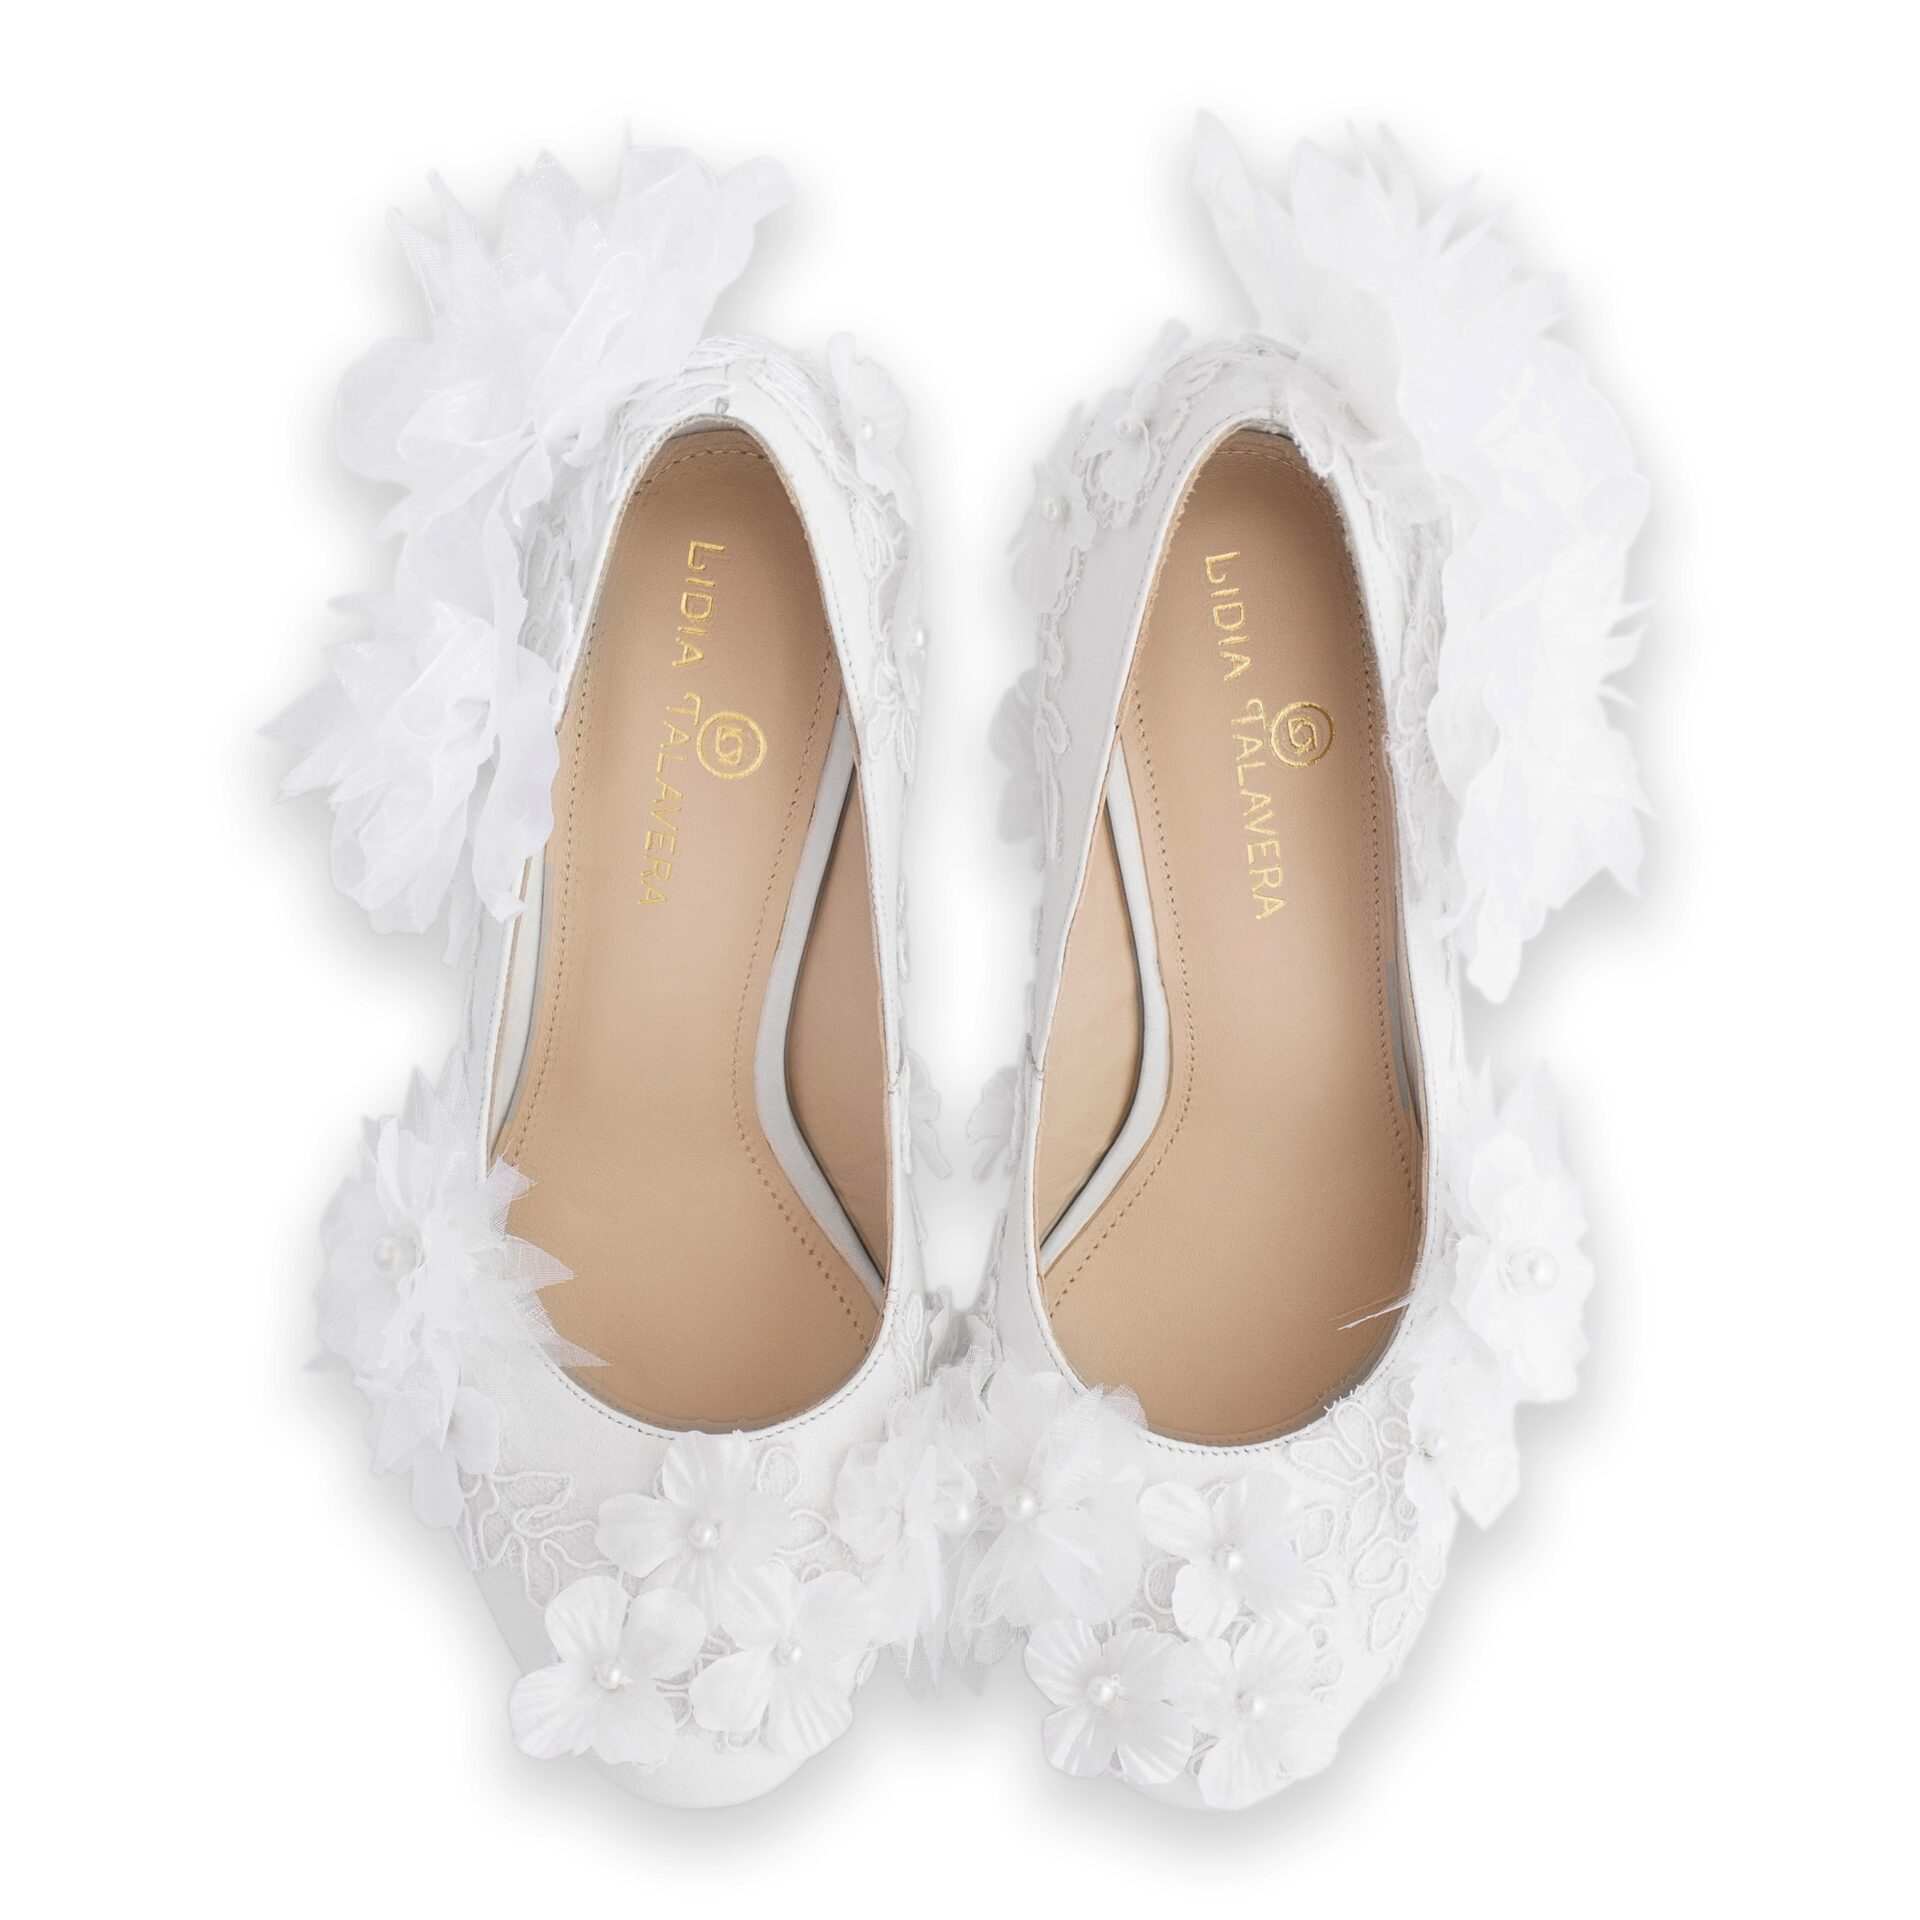 white wedding pumps with flowers & pearls